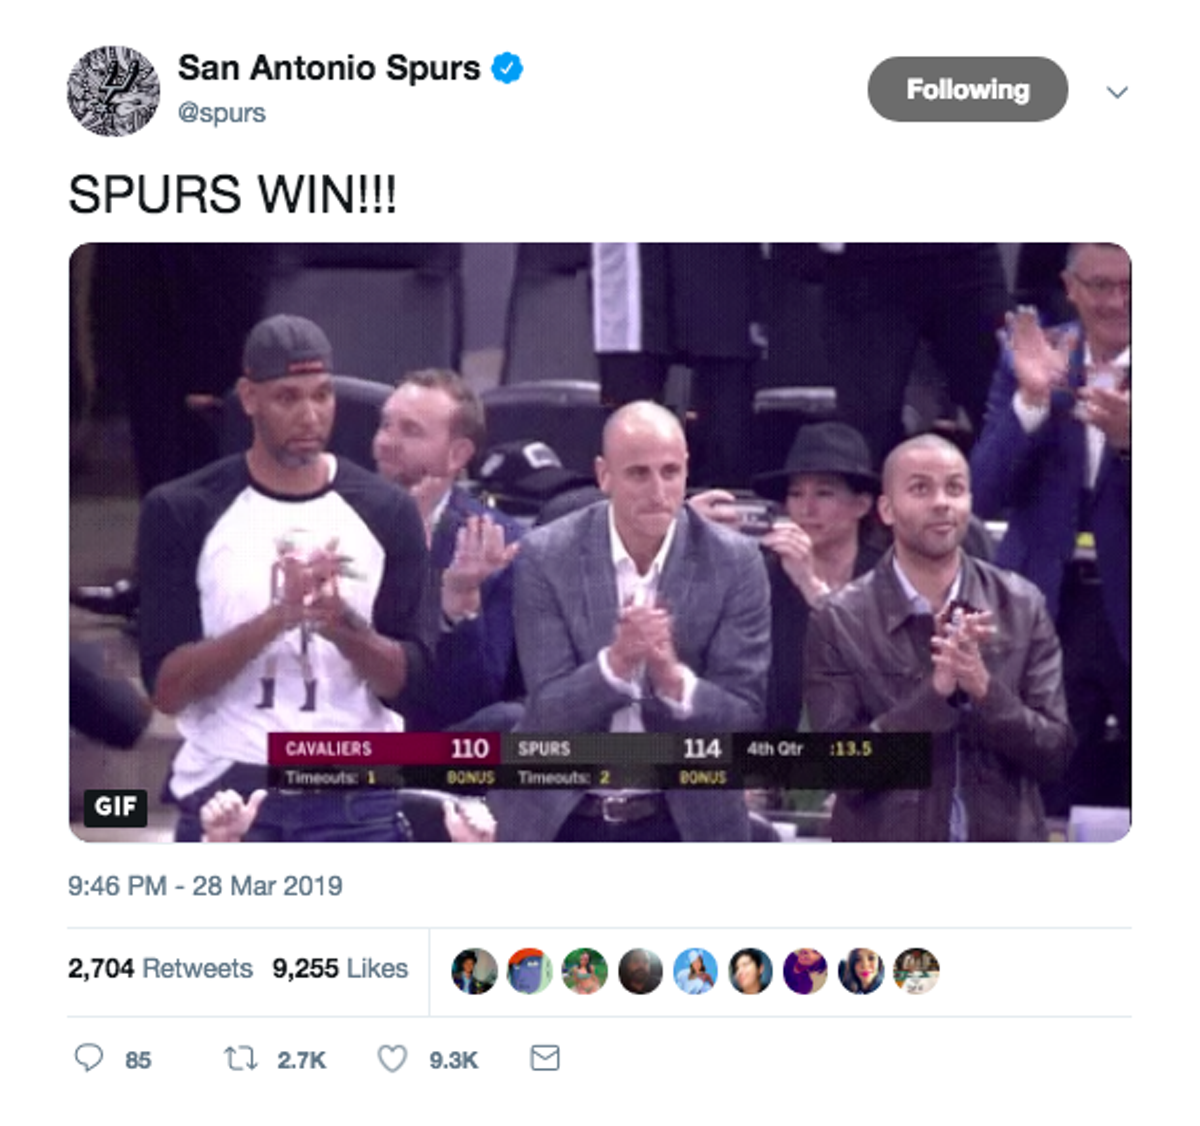 cceee5b57d7 20 Emotional Moments from Manu Ginobili's Jersey Retirement Ceremony Last  Night. By San Antonio Current Staff